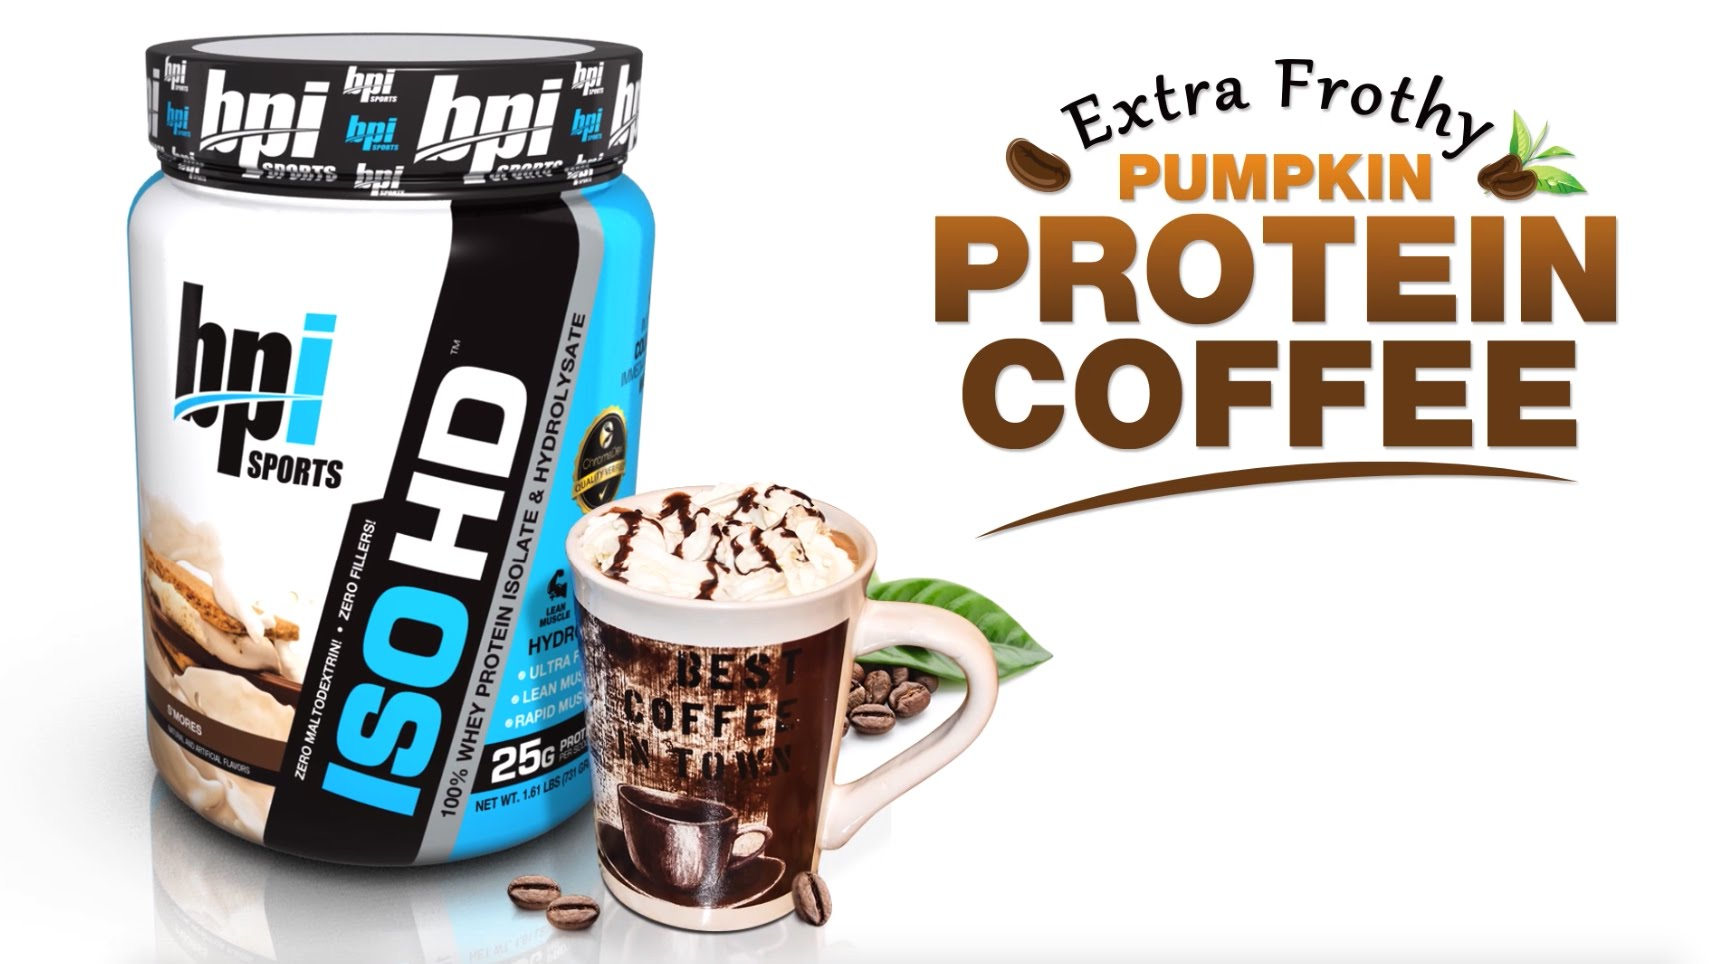 Pumpkin-Protein-Coffee-Best-Nutrition-BPI-Sports